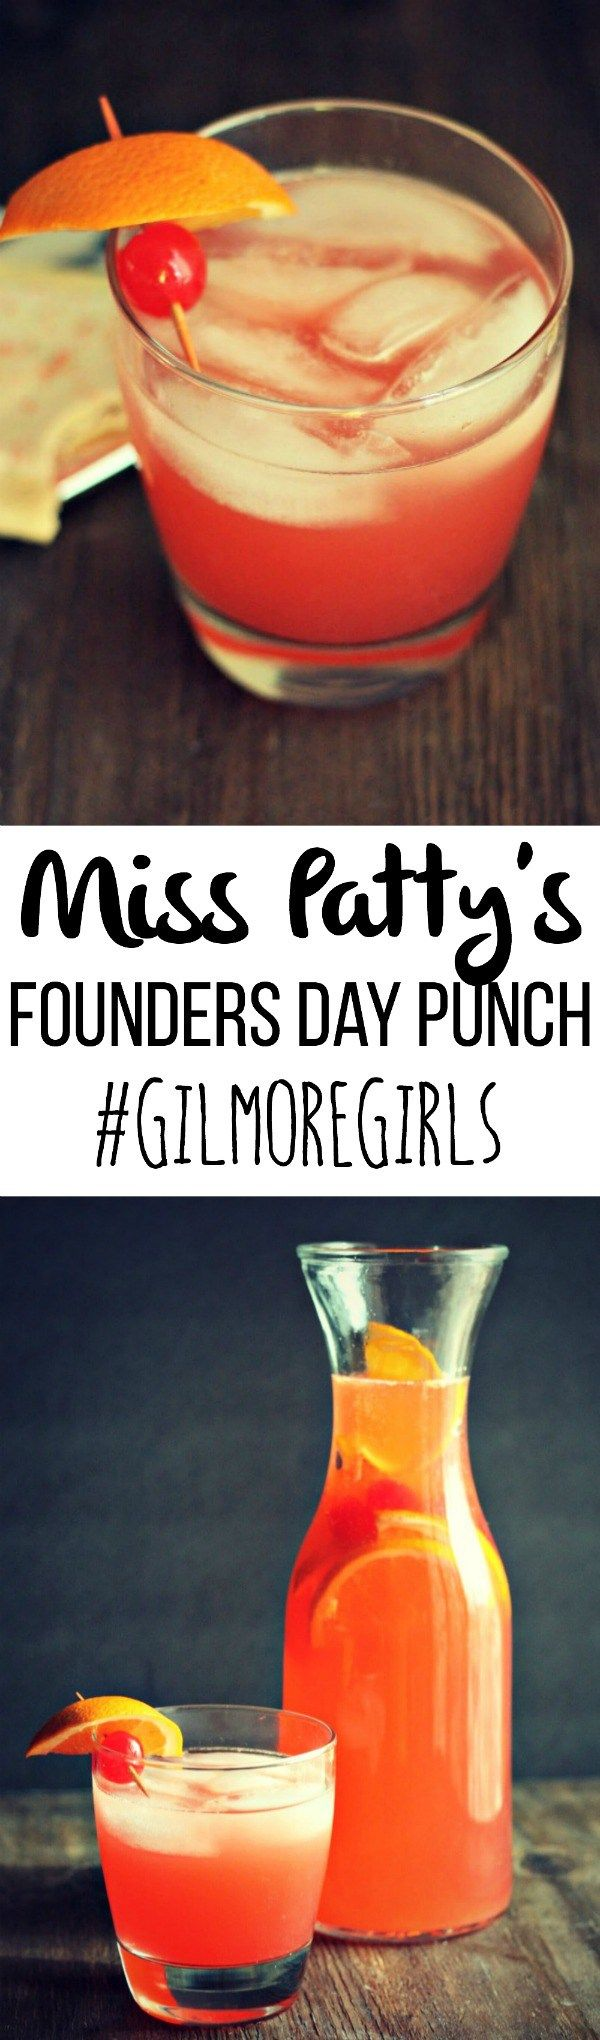 It's here: Miss Patty's Founders Day Punch! Any Gilmore Girls fan knows about this lethal punch--this is my twist just in time for the GG revival next week! via @DashOfEvans